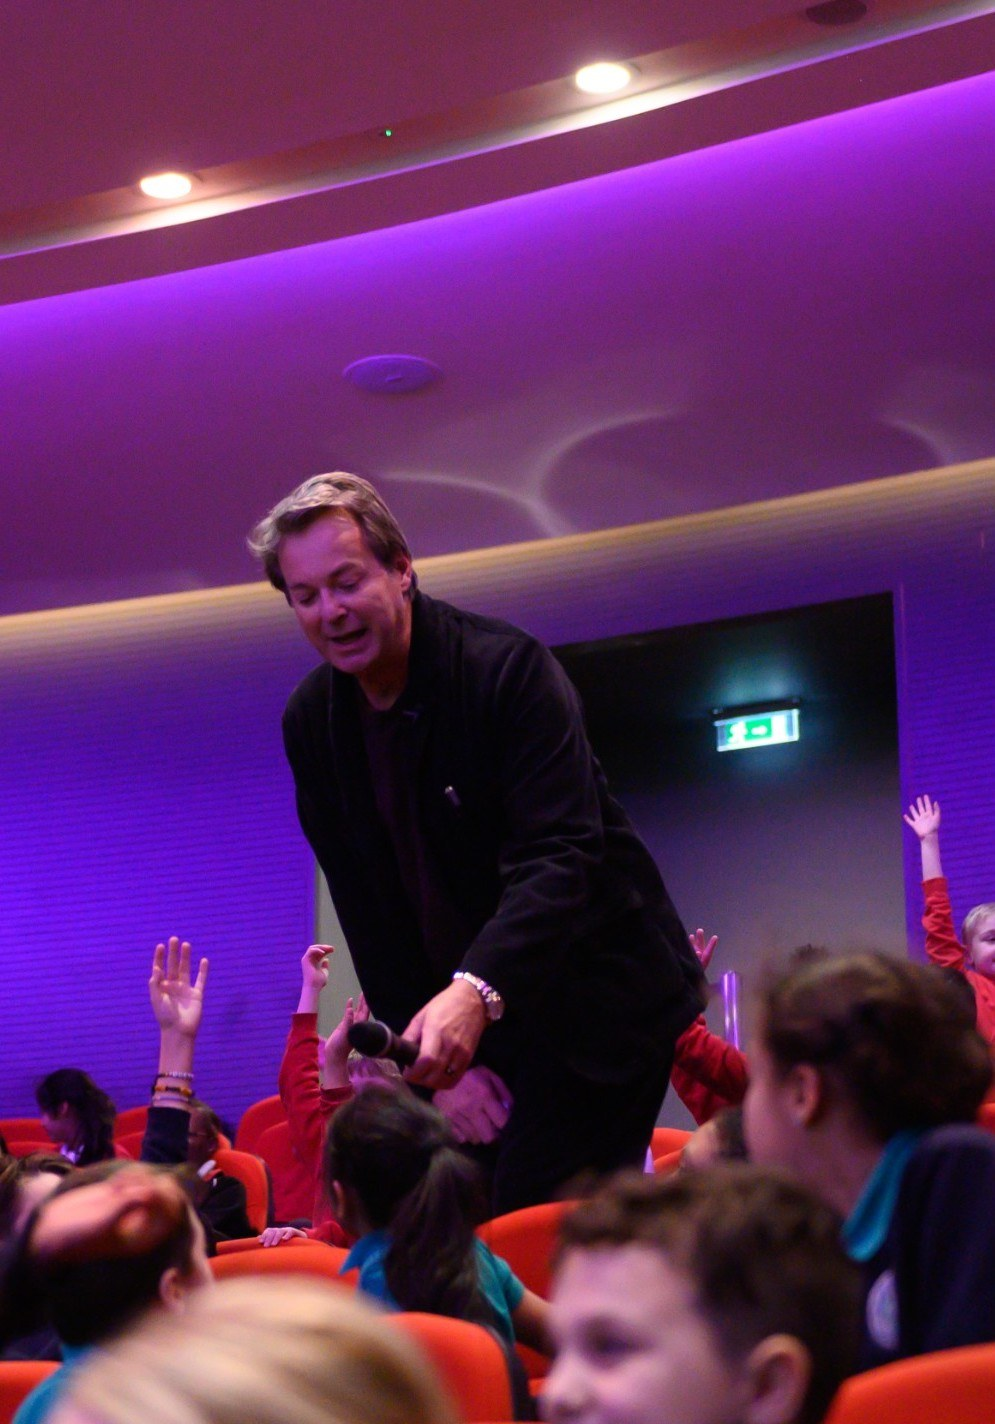 Julian CLary amongst audience members at Newham Word Festival